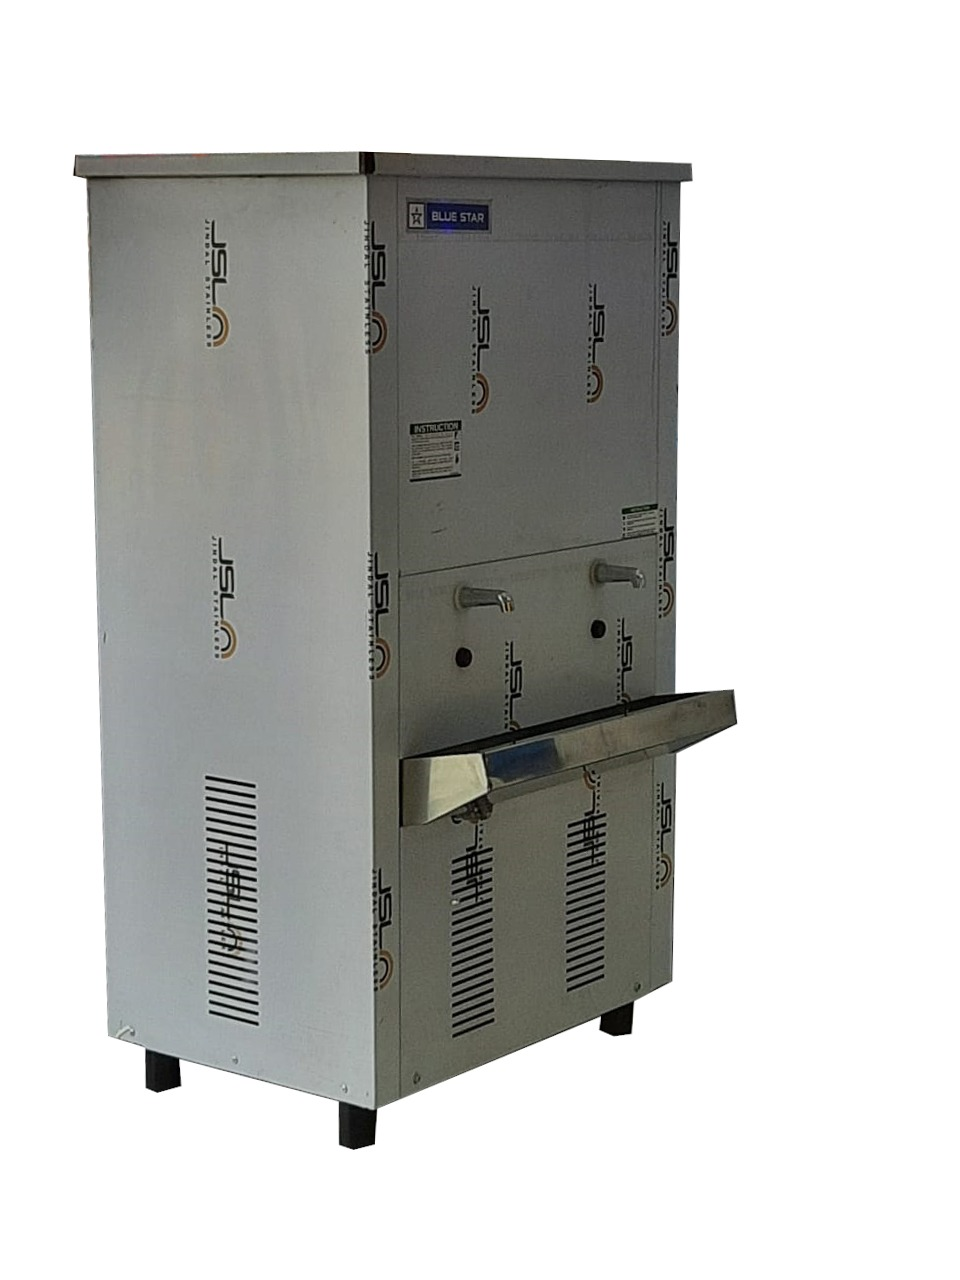 Blue star touch less water cooler SDLX 6080 BT Series- prices